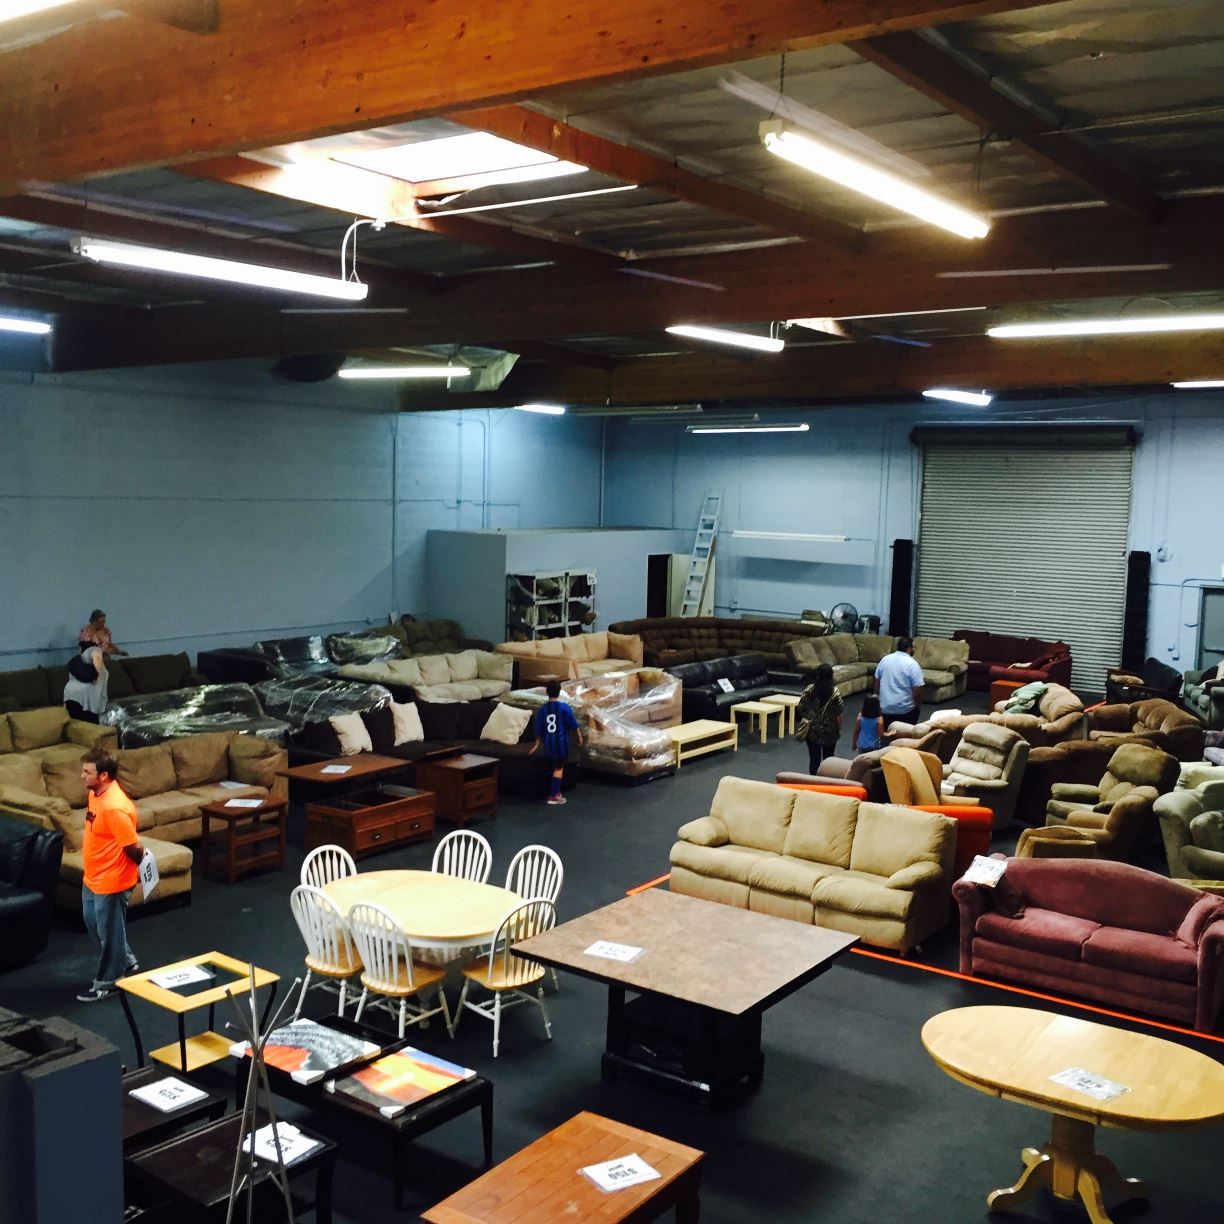 Discount Furniture Stores In Santa Ana